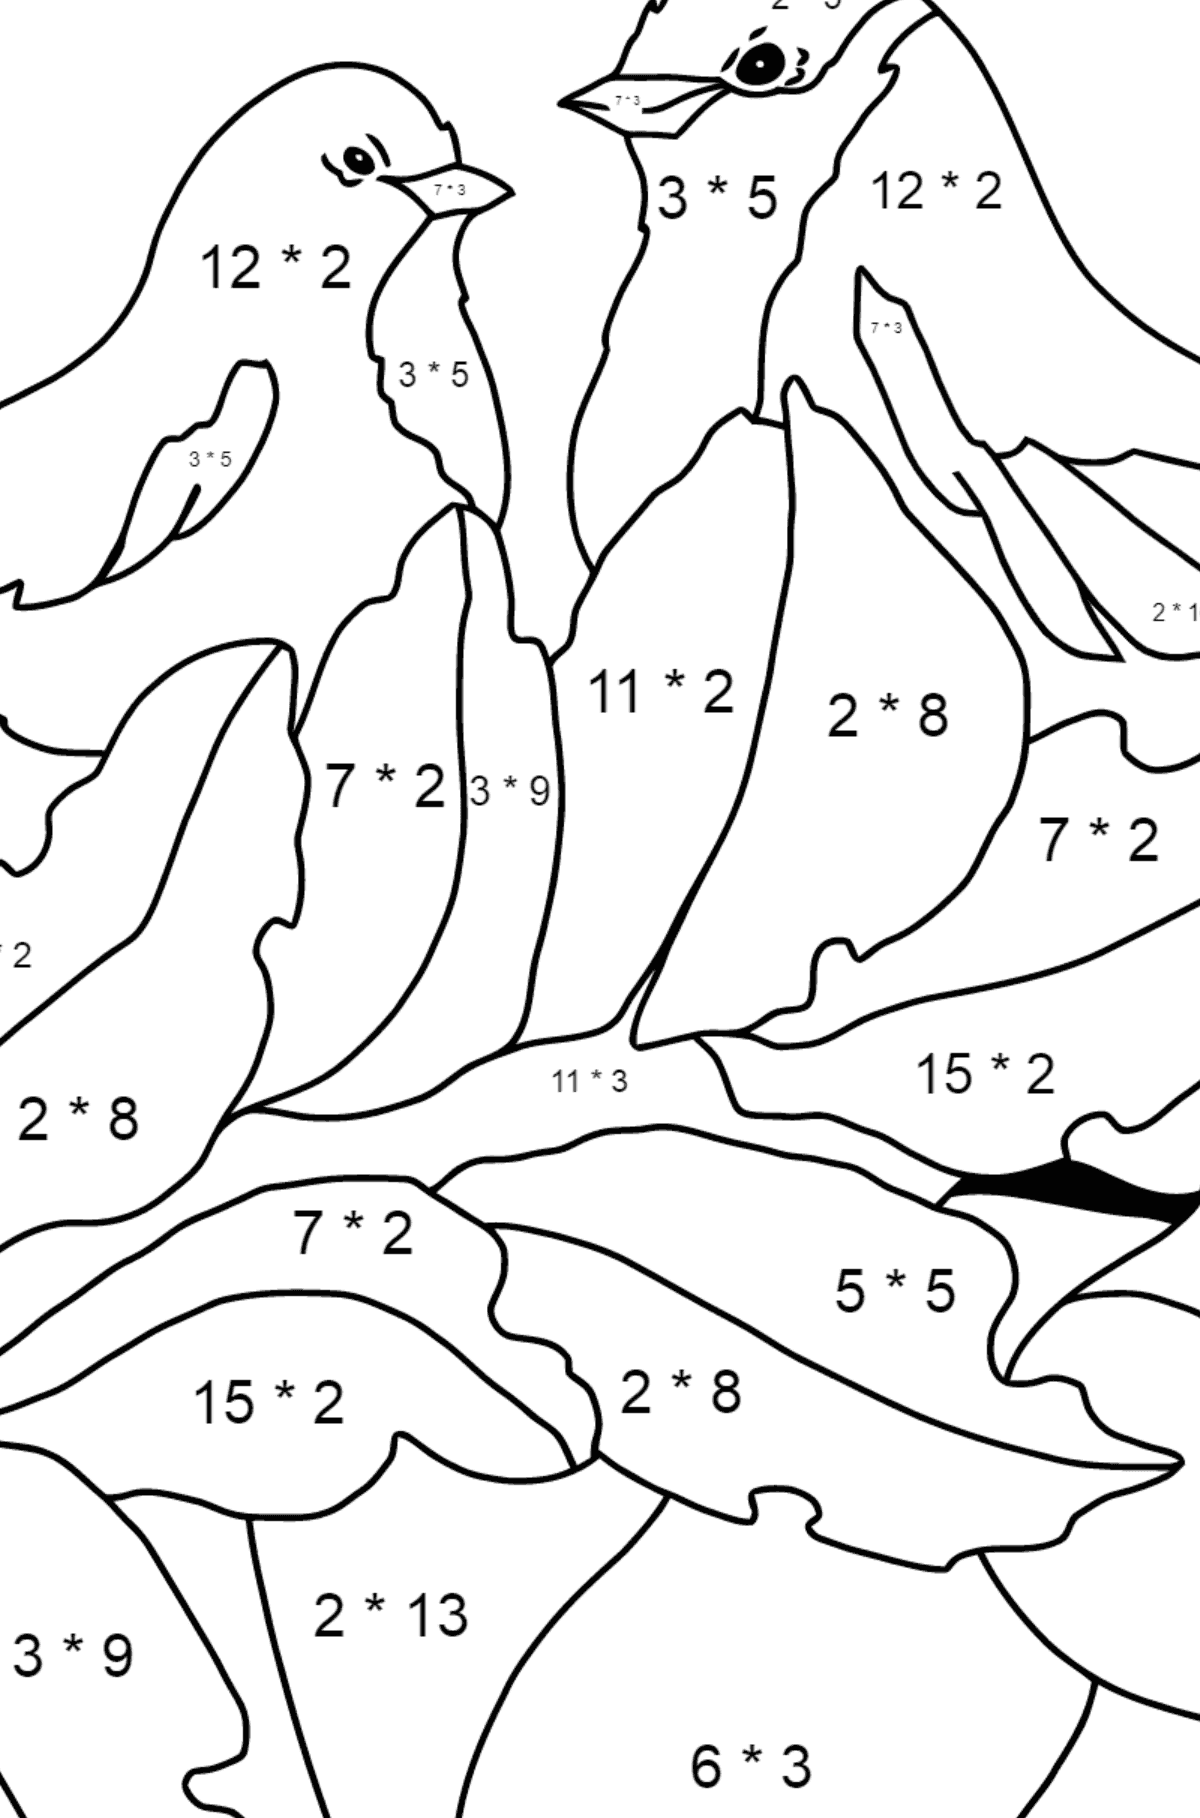 Autumn Coloring Page - Ripe Apples for Children  - Color by Number Multiplication